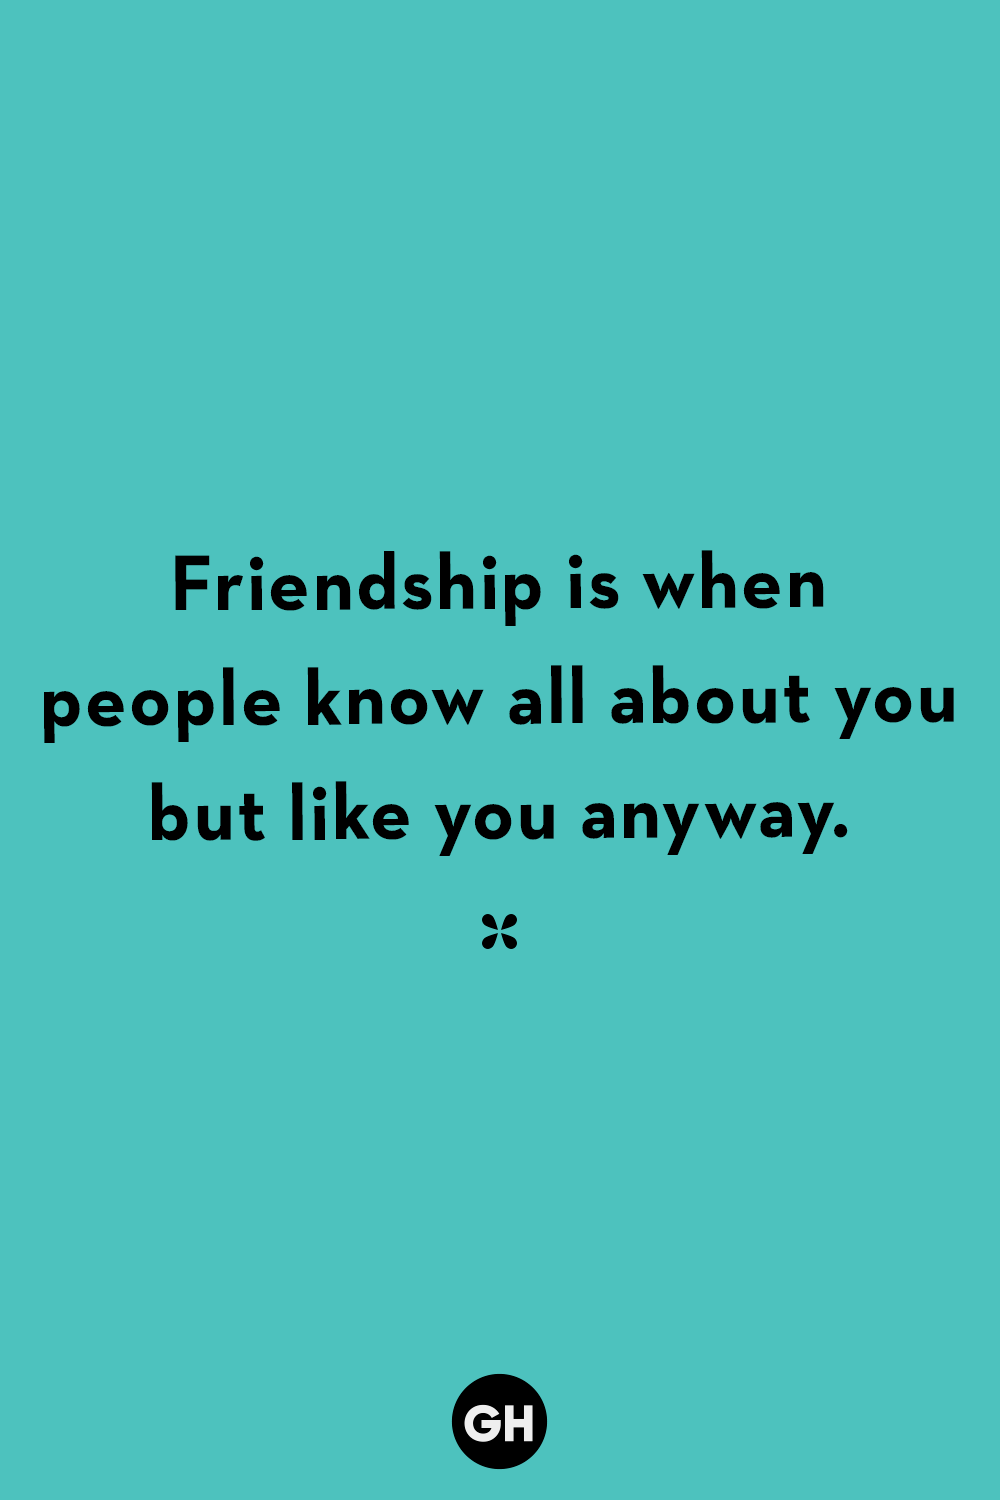 40 Short Friendship Quotes for Best Friends - Cute Sayings About Friends